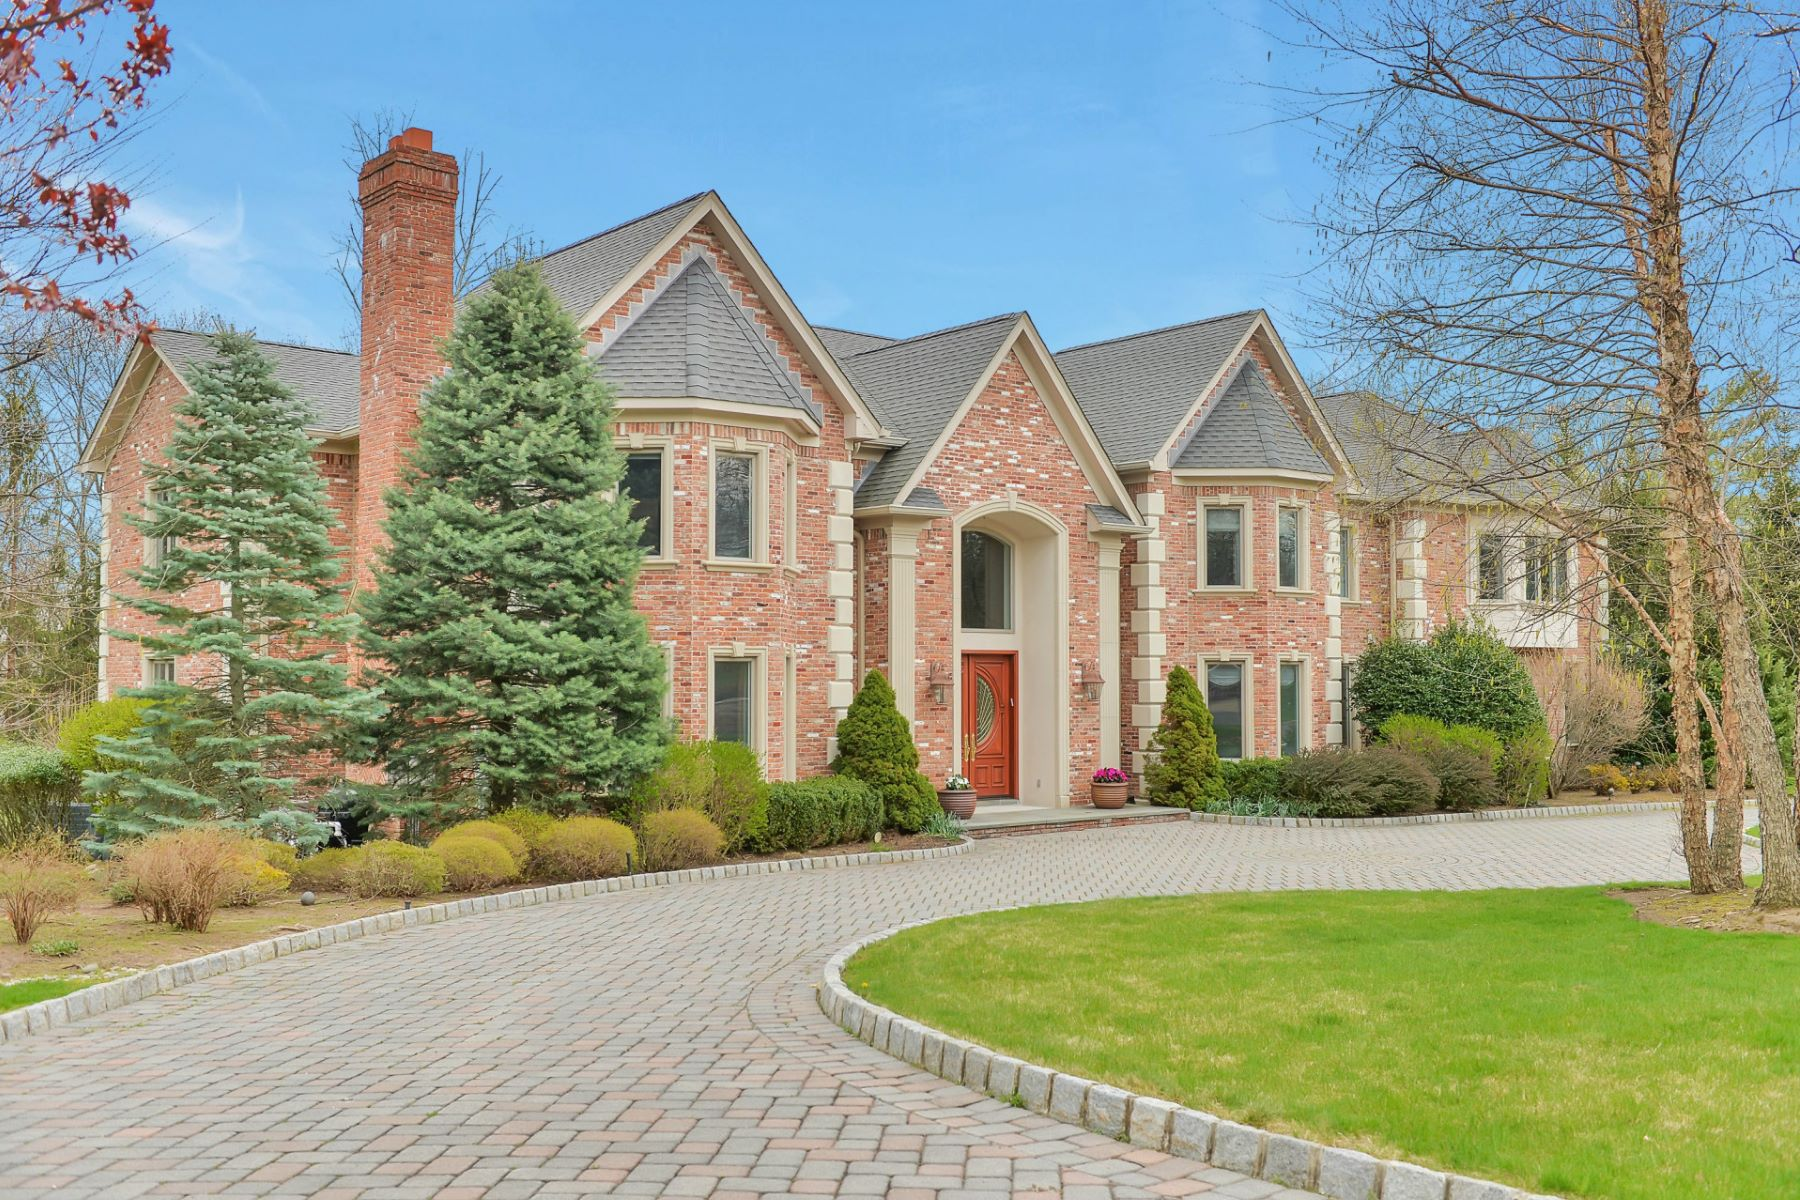 Single Family Home for Sale at Renowned Builder Property 4 Glen Carl Rd Upper Saddle River, 07458 United States